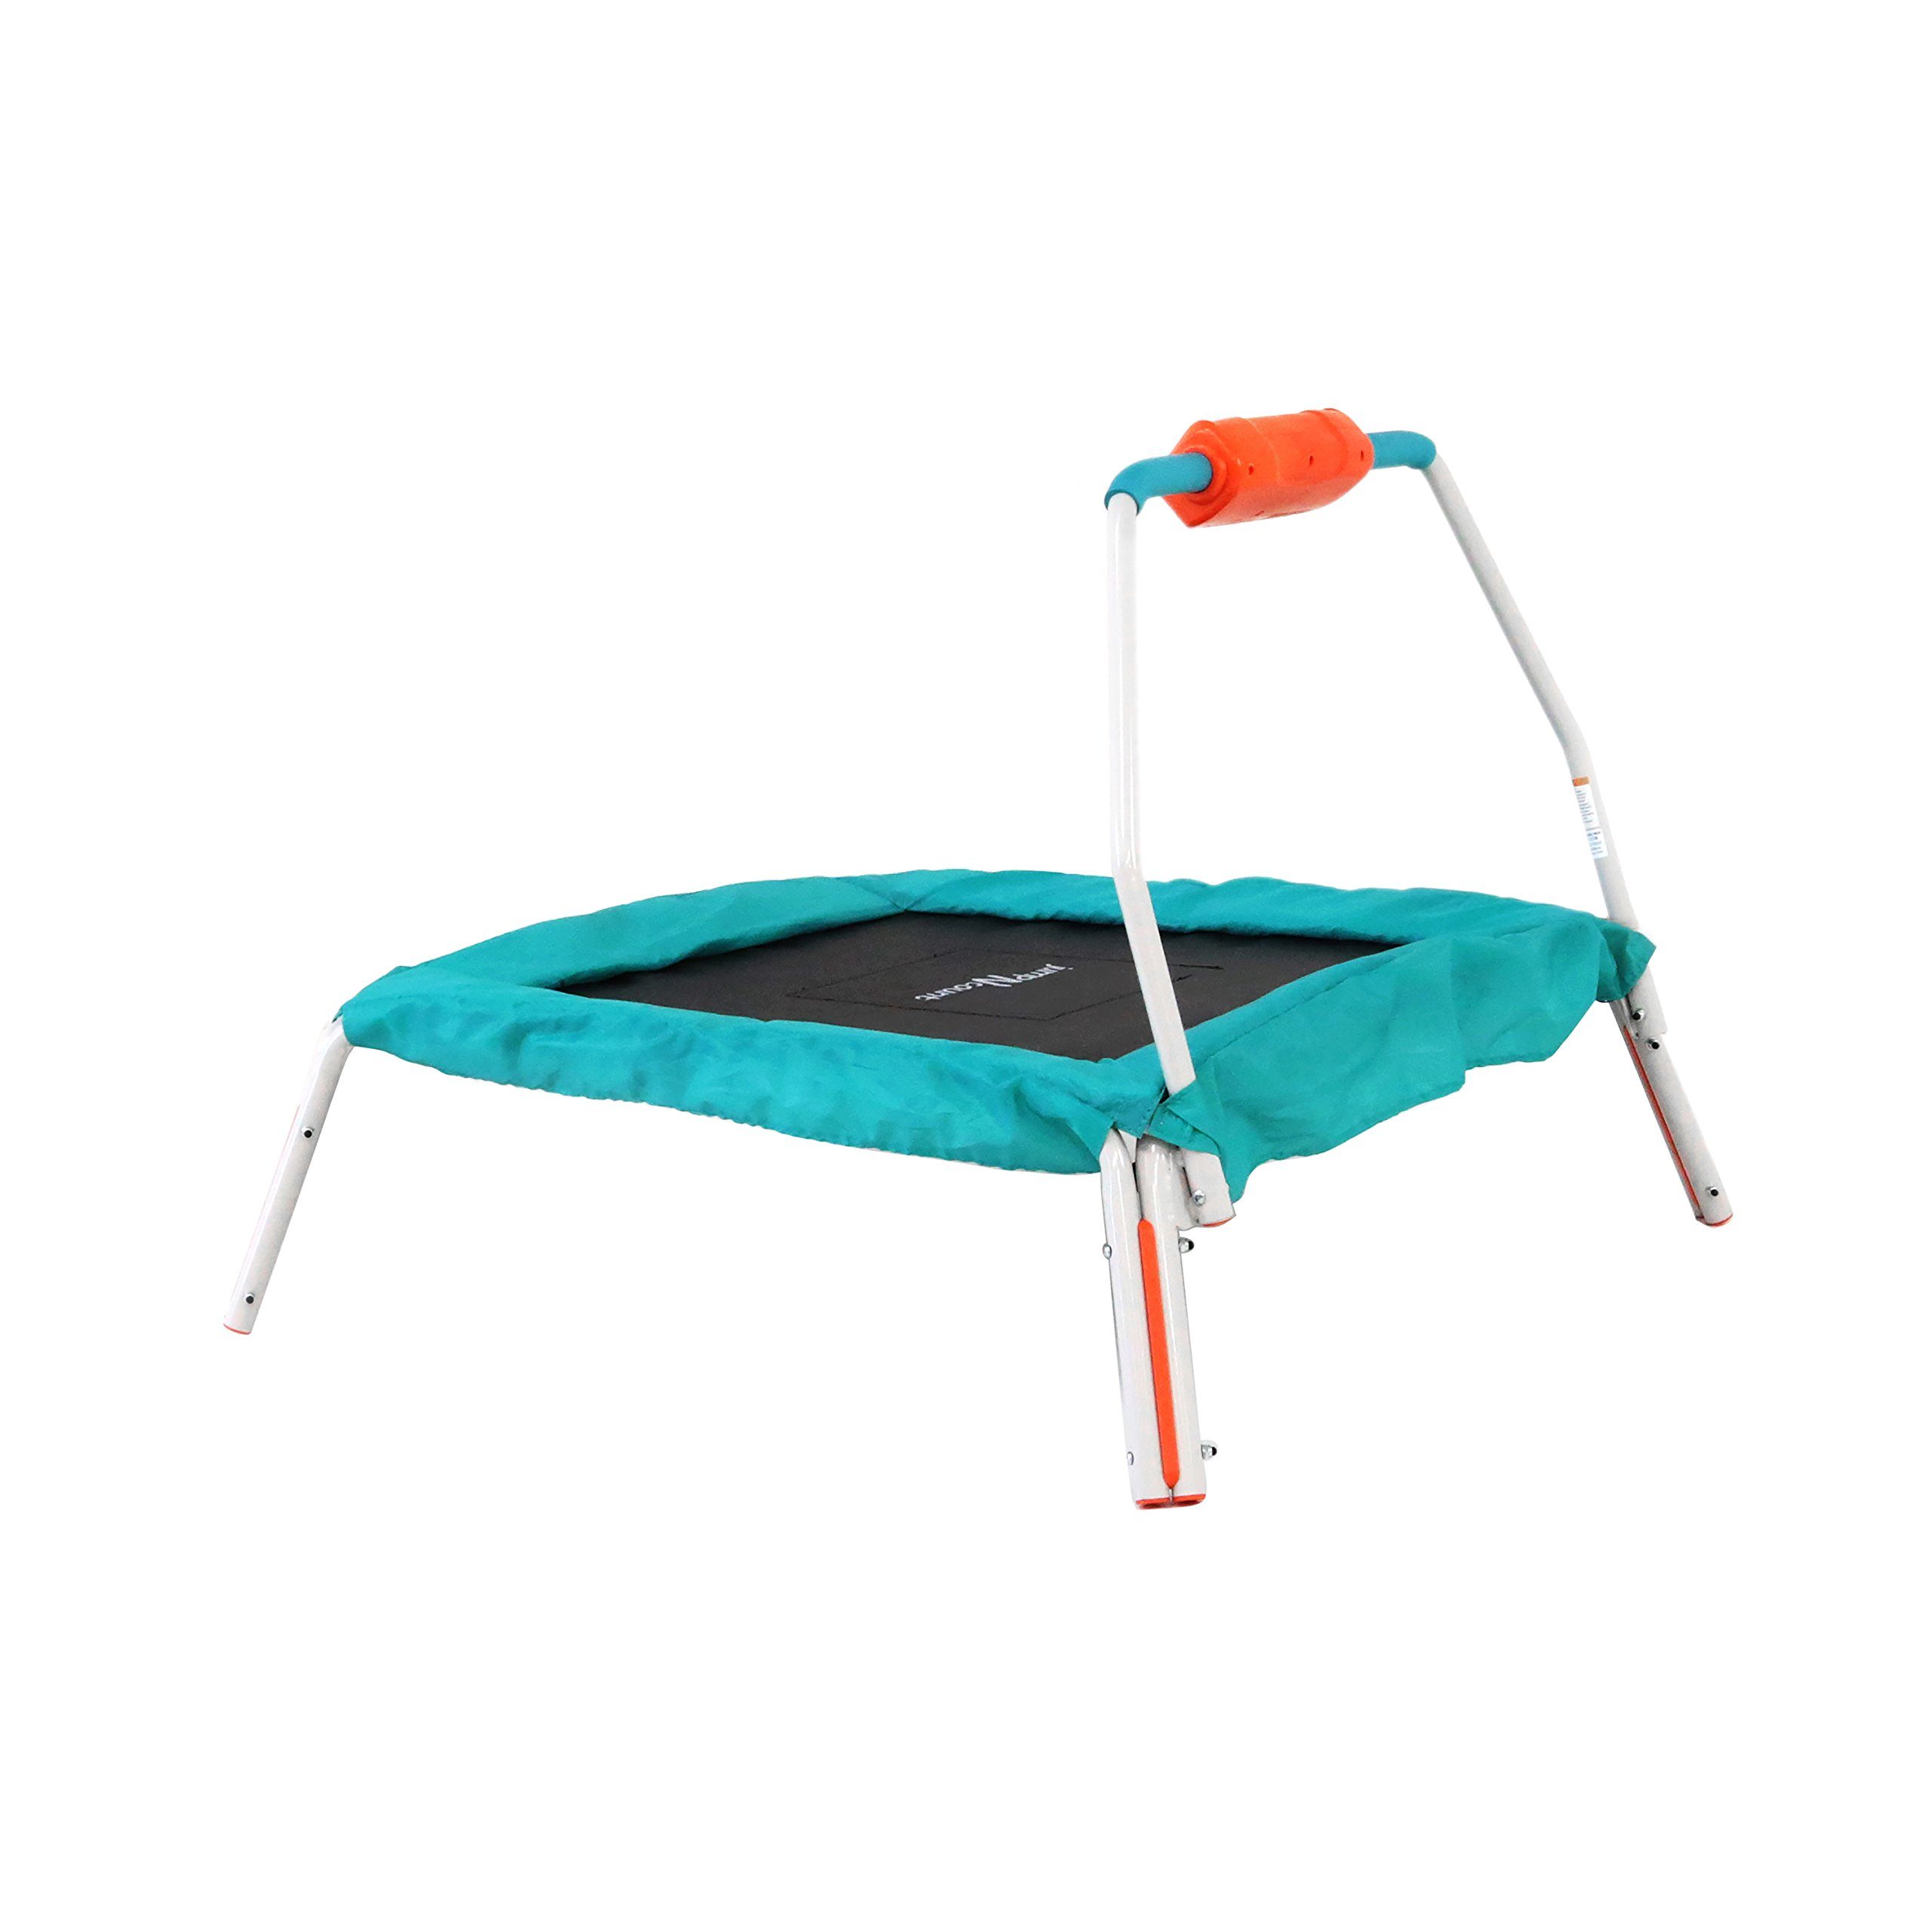 "Skywalker Trampolines 36"" Square Jump-N-Count Interactive Trampoline Mini Bouncer with Sound"